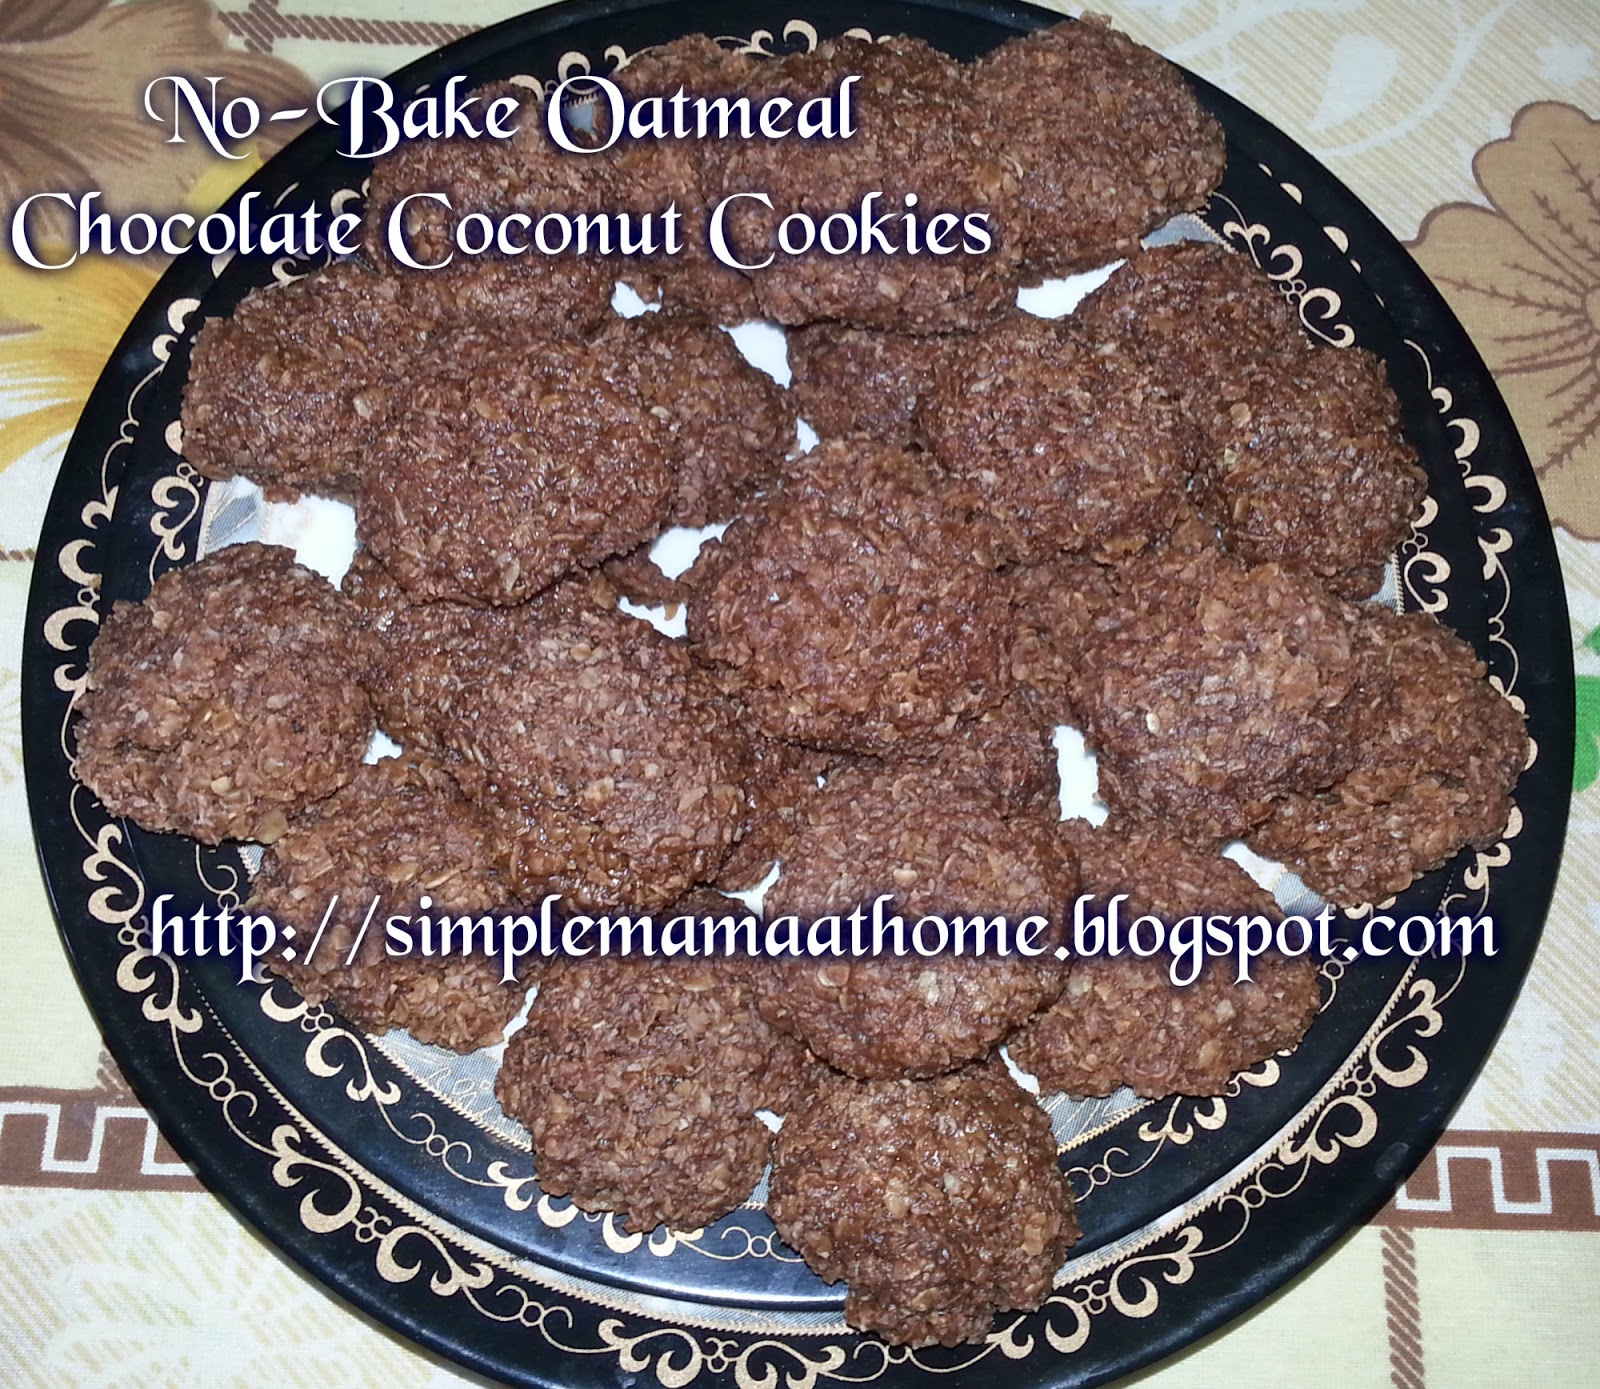 Simple Mama At Home: No-Bake Oatmeal Chocolate Coconut Cookies